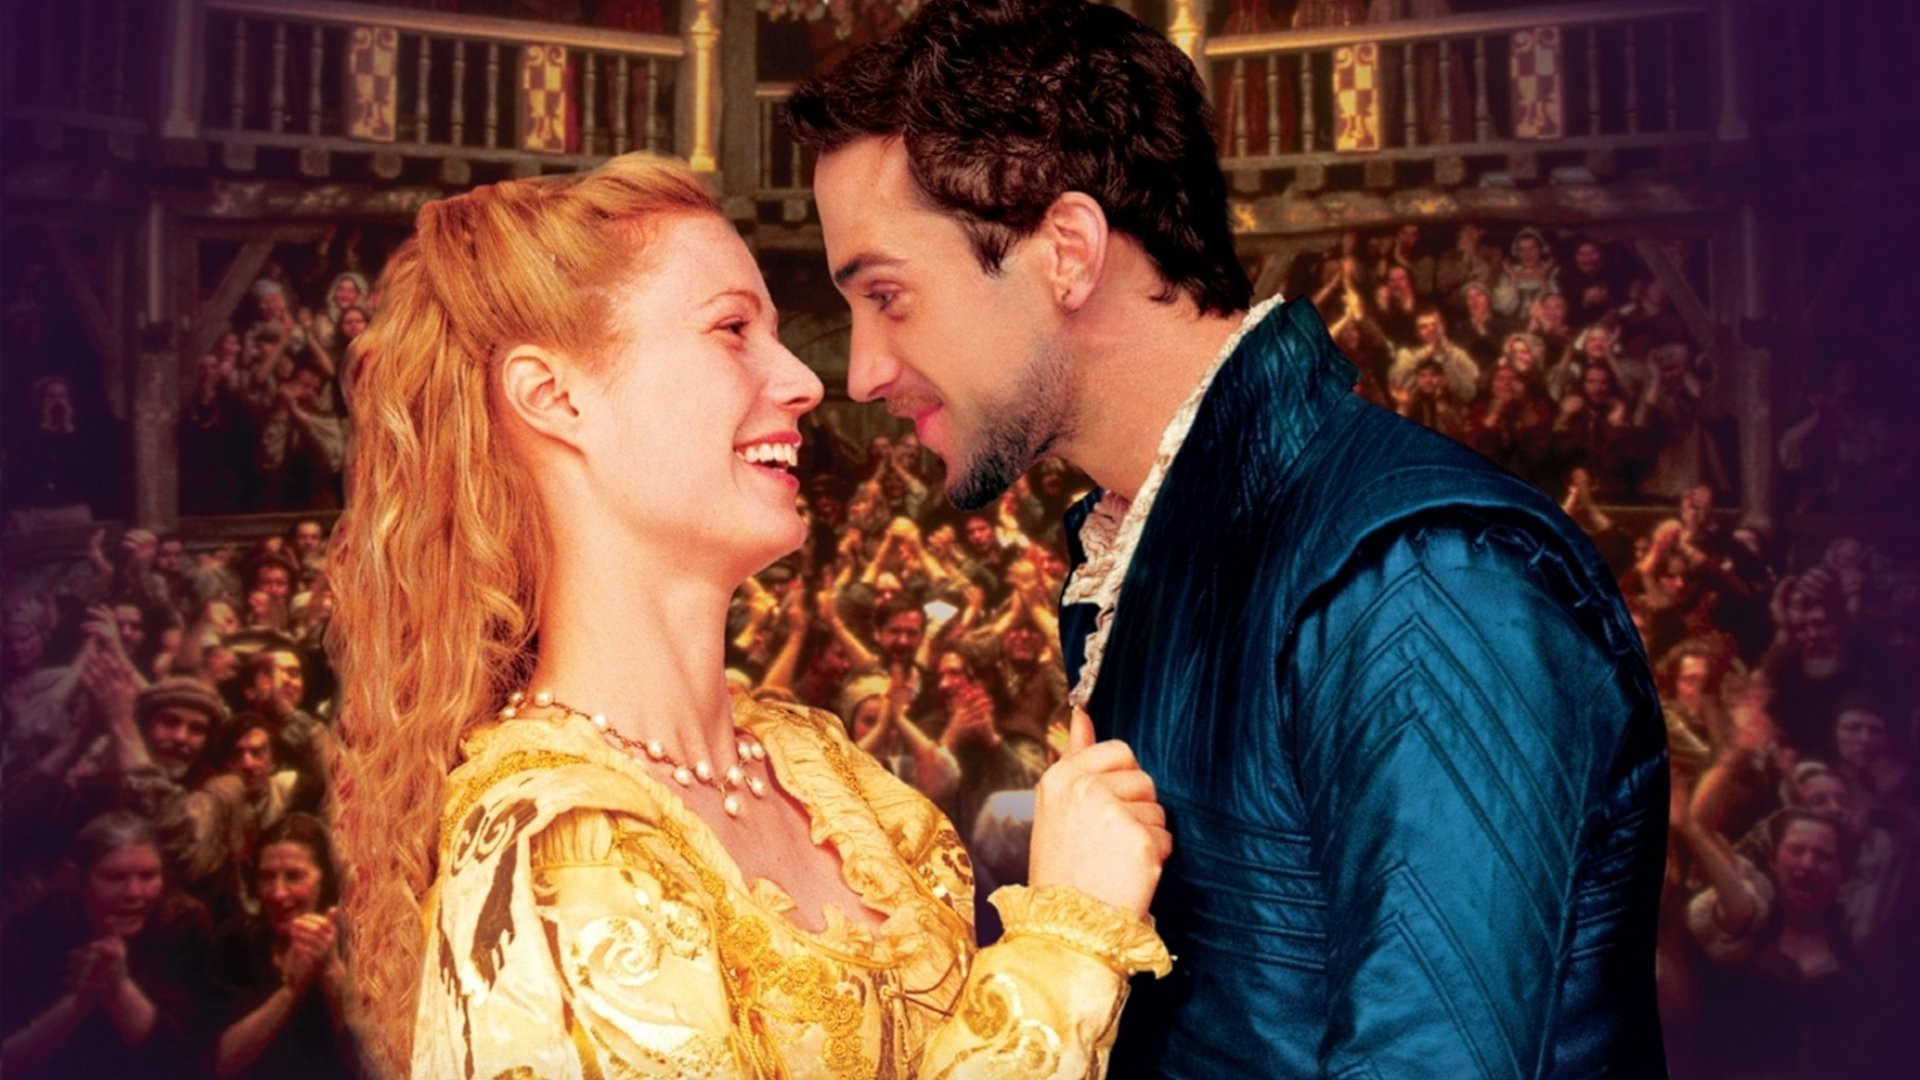 love as the major theme in william shakespeares romantic comedies Romantic love in william shakespeare's as you like it and twelfth night the fickleness of romantic love is a major theme in william shakespeare's comedies as you like it and twelfth night, or what you will.